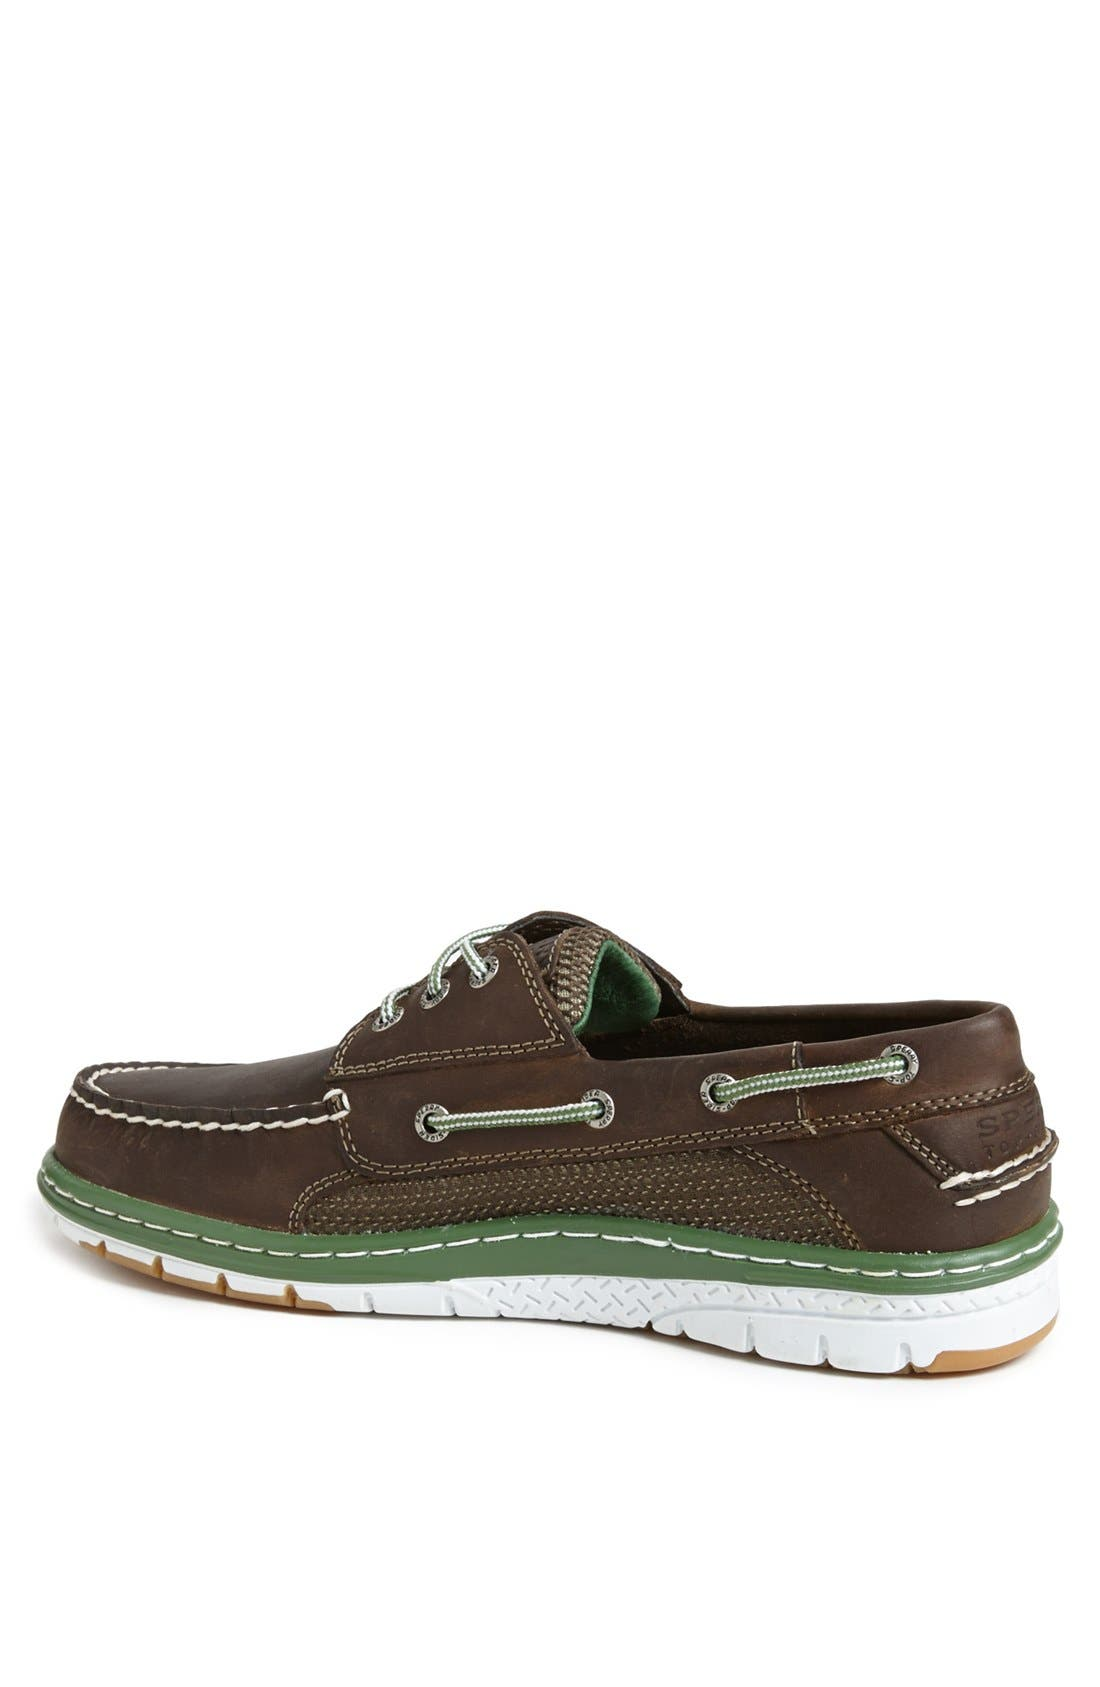 'Billfish Ultralite' Boat Shoe,                             Alternate thumbnail 71, color,